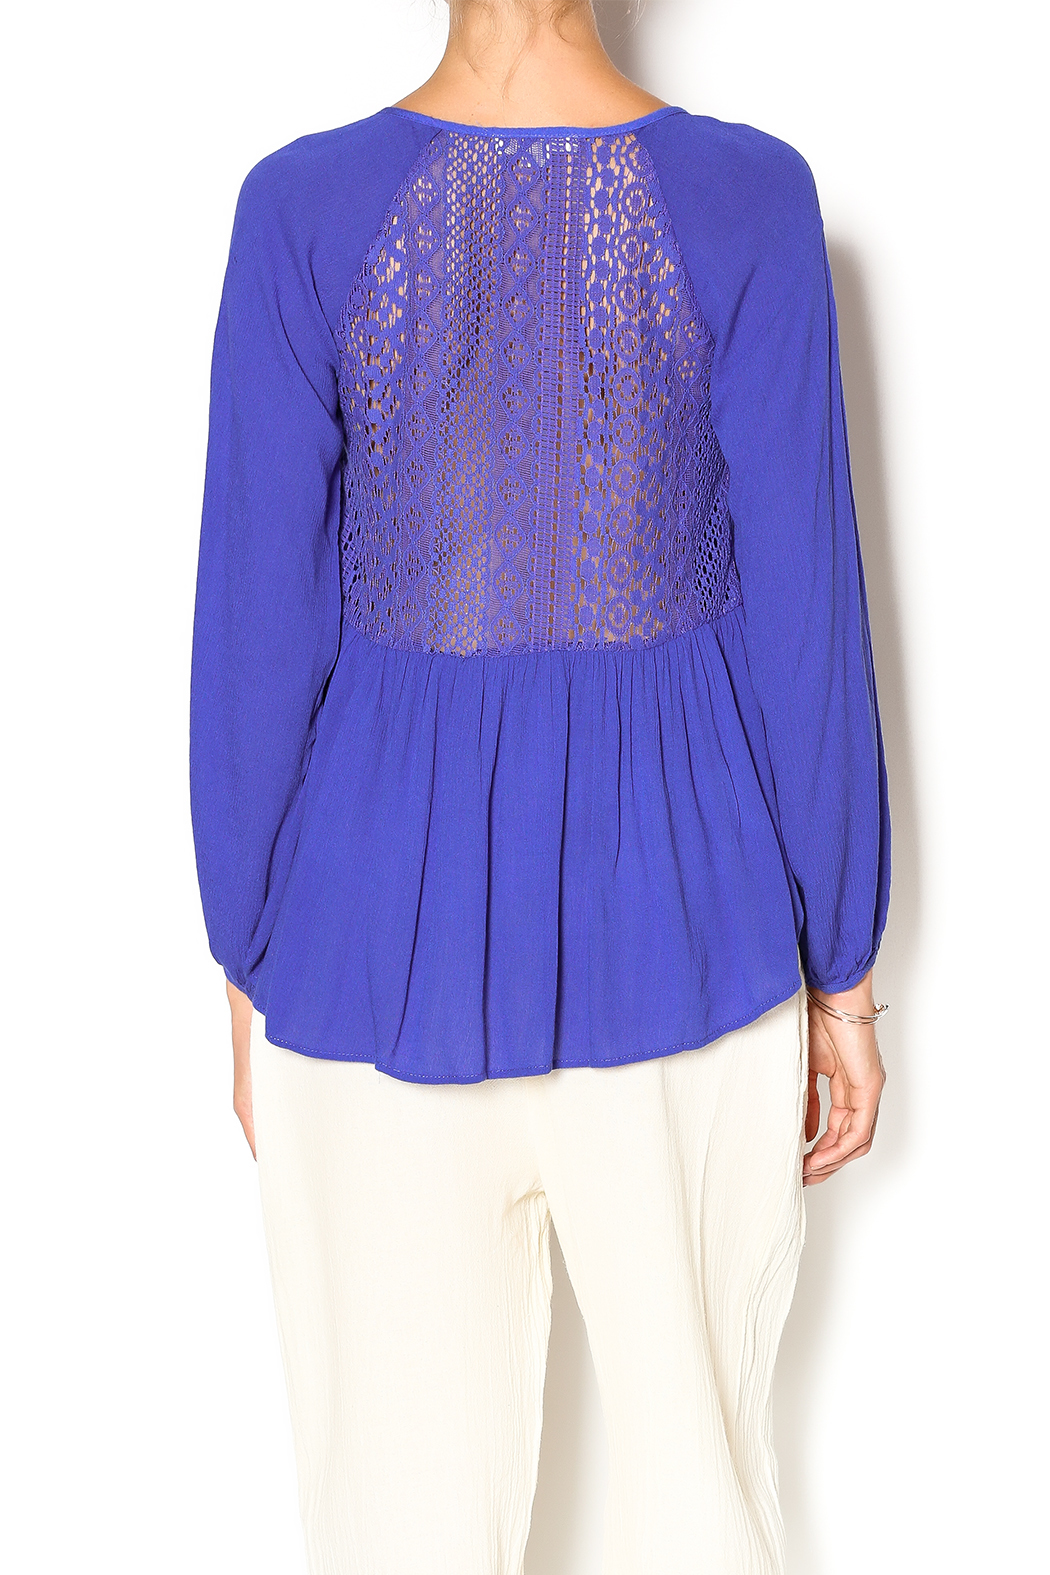 Double Zero Azure Gauze Blouse - Back Cropped Image